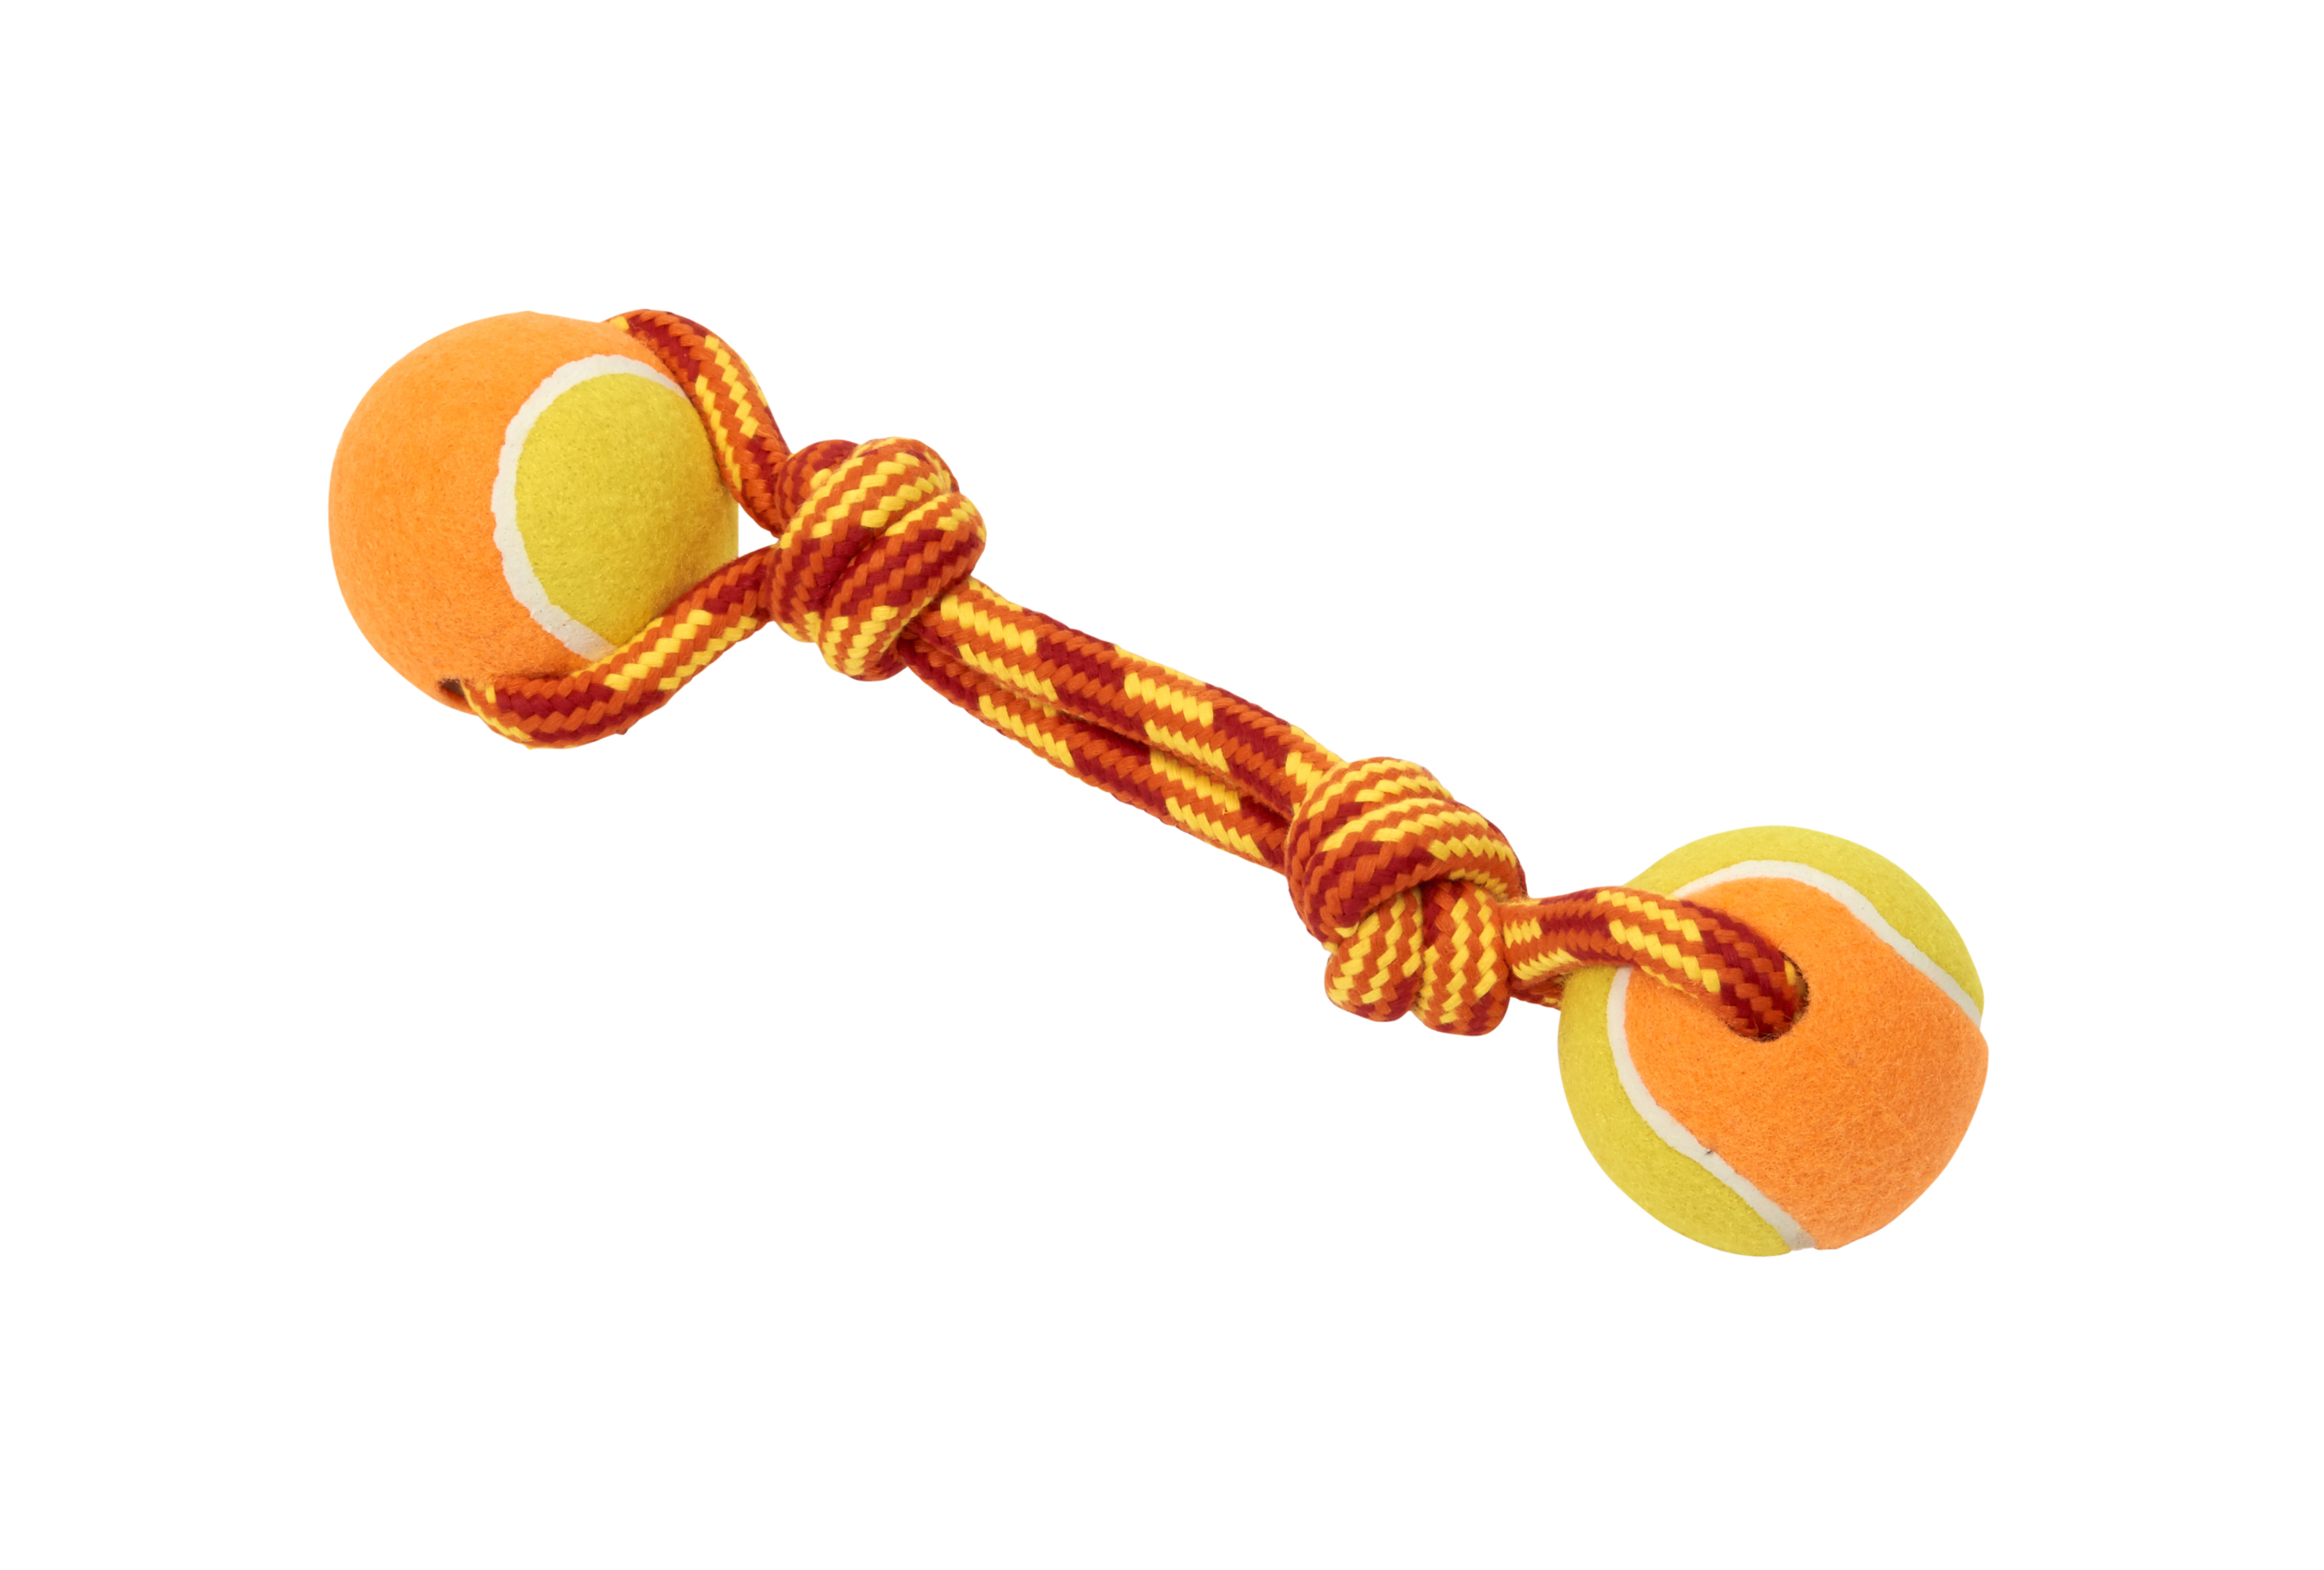 BUSTER Colour Tuggaball Double Tennisball, red/orange/yellow, medium, 23 cm